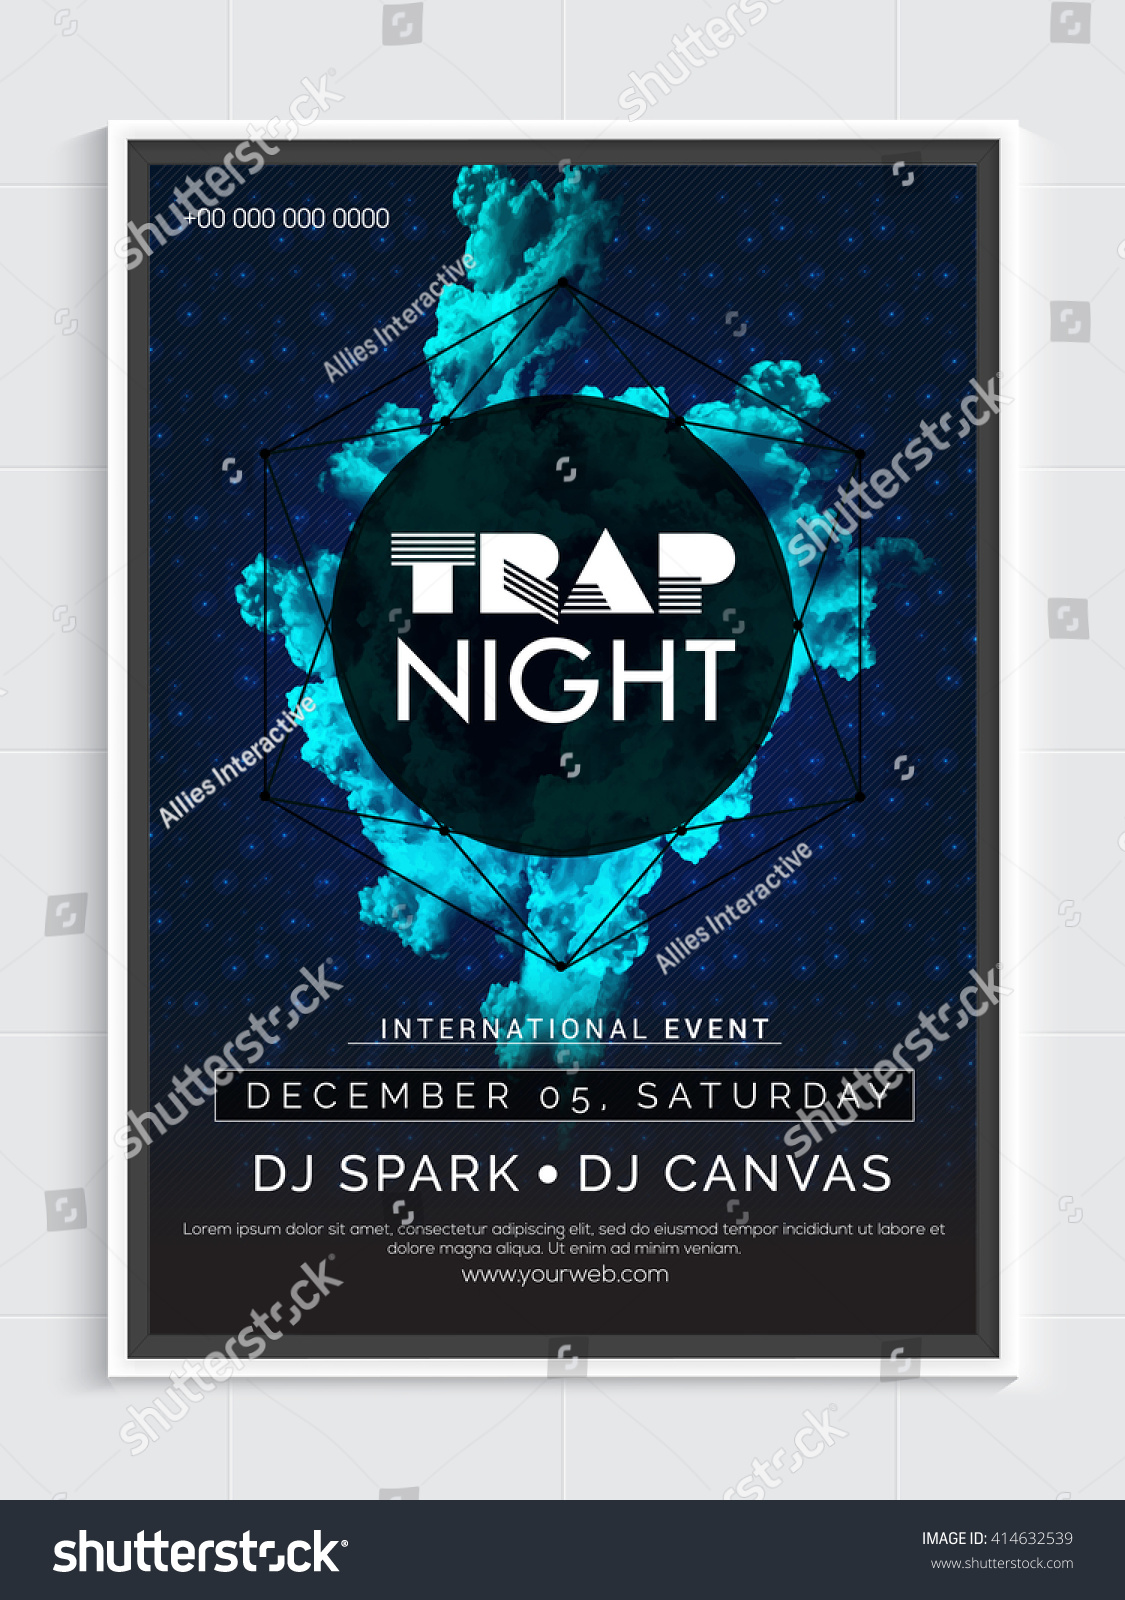 trap night party template dance party stock vector 414632539 trap night party template dance party flyer night party banner or club invitation design